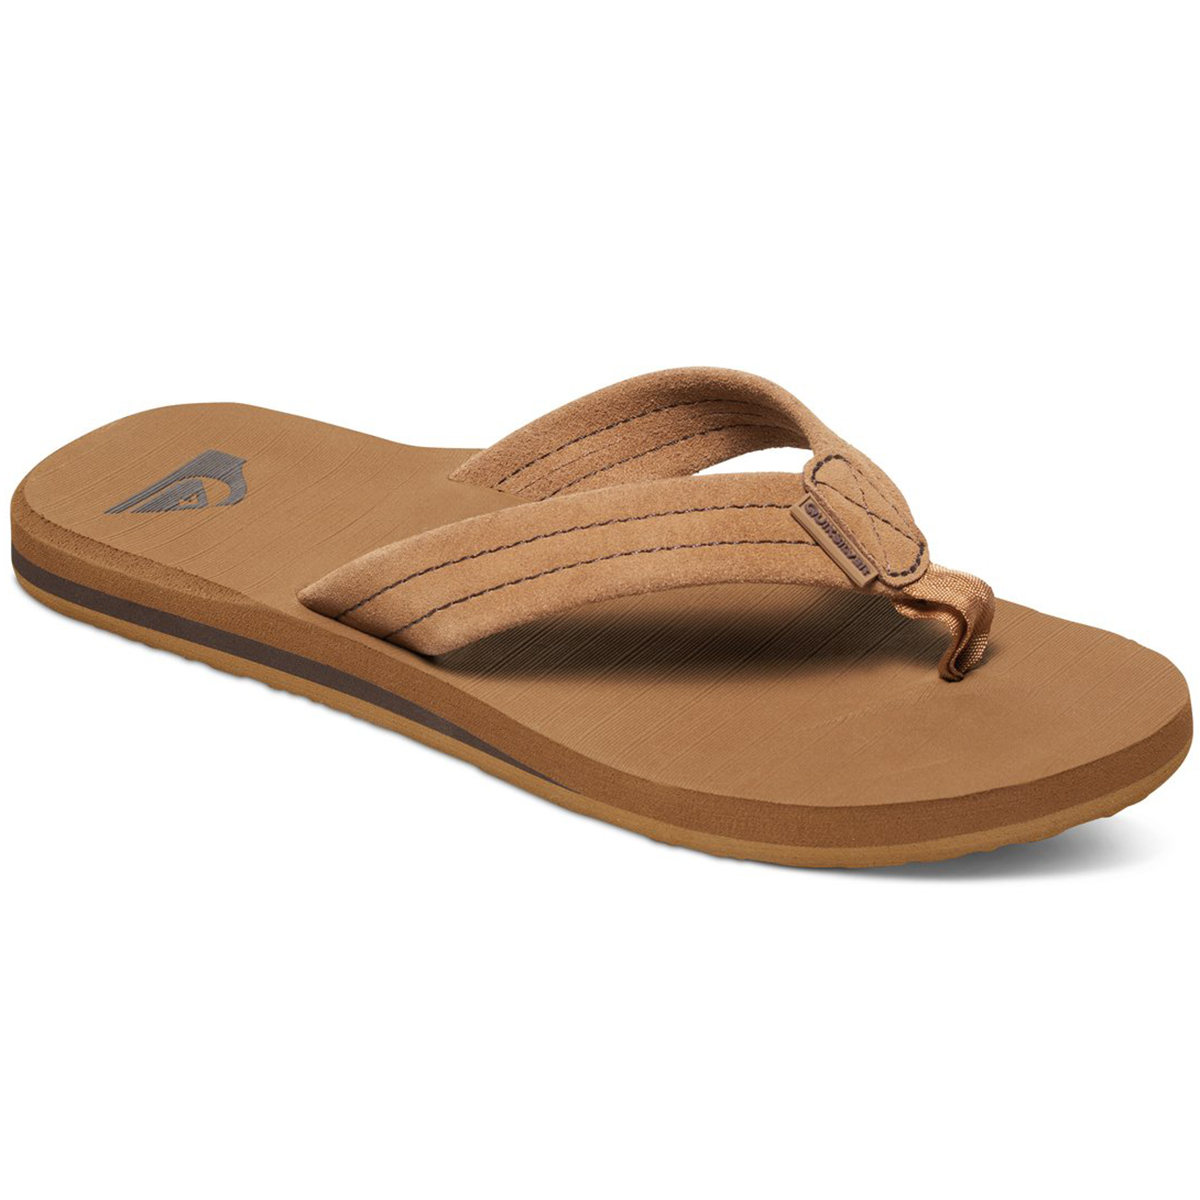 Quiksilver Men's Carver Suede Sandals - Brown, 11